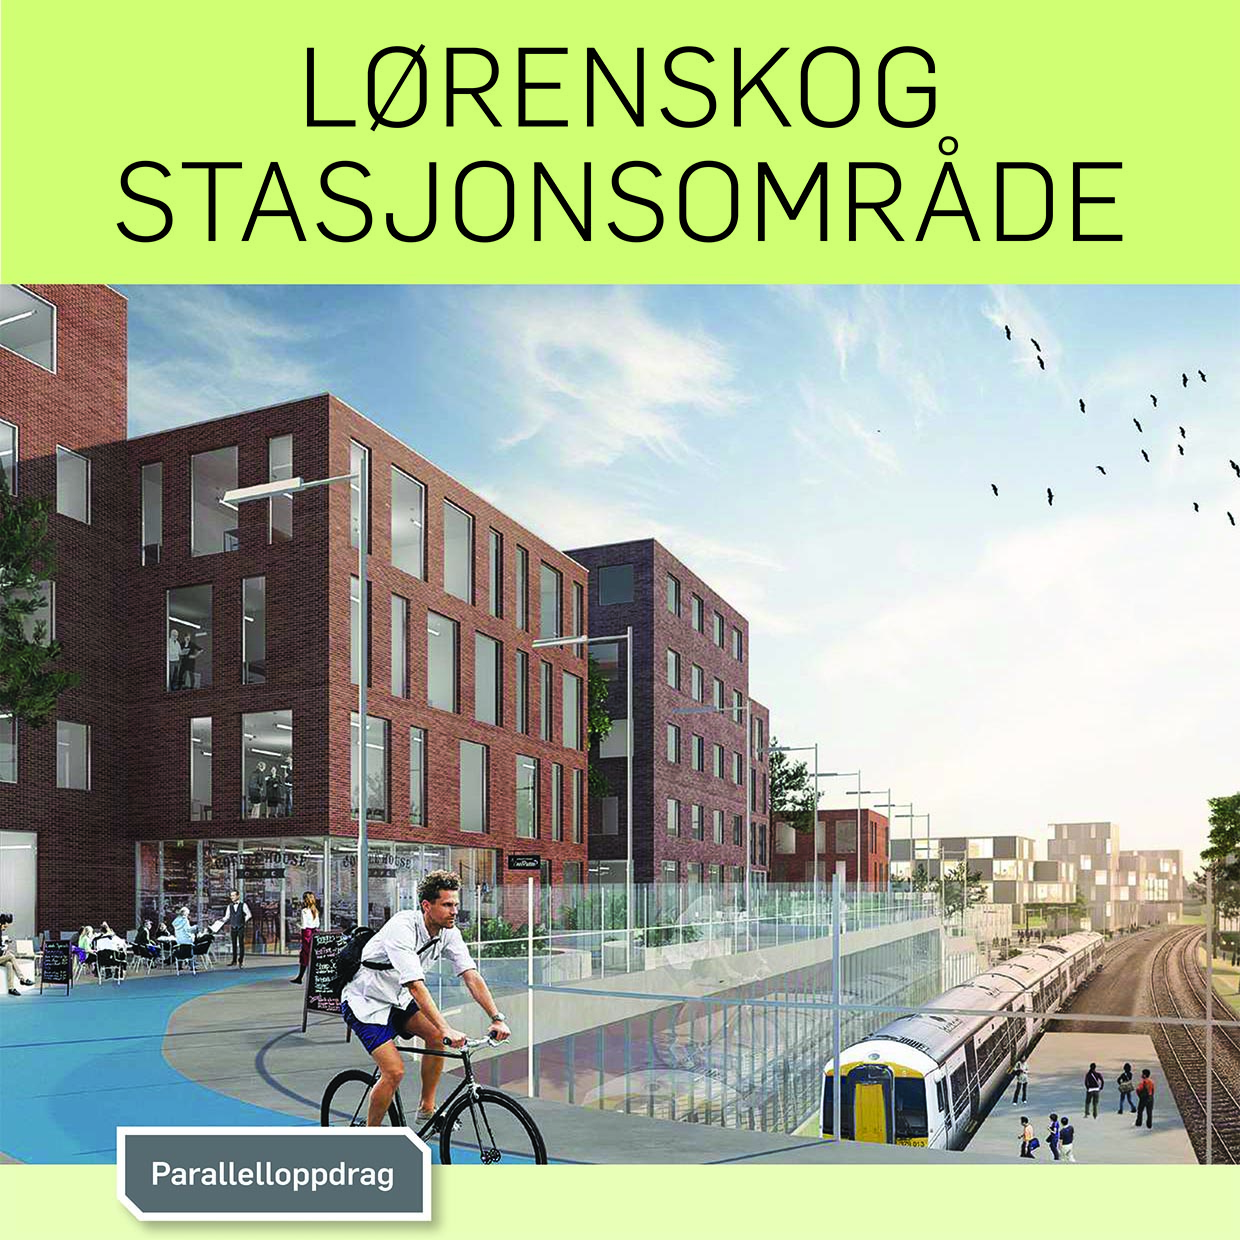 The Report for Lørenskog Station Area is out! Edit/atelier & Tin (f.k.a. Gattaca) served as 1 of the 3 teams shaping it! - 09.04.2019 - ByLIVsenteret - The report is based on work done in Aug-Oct 2018, with the goal of securing a positive long-term development of the station area. The exhibition of the proposals were sought-after by the inhabitants and garnered positive response. The evaluation committee for this work has arrived on 7 guidelines for it, whereas 3 of them was recommended to be executed very quickly. The guidelines has been discussed thoroughly within the professional groups at Lørenskog municipality.Read More!The Report, click to downlad!